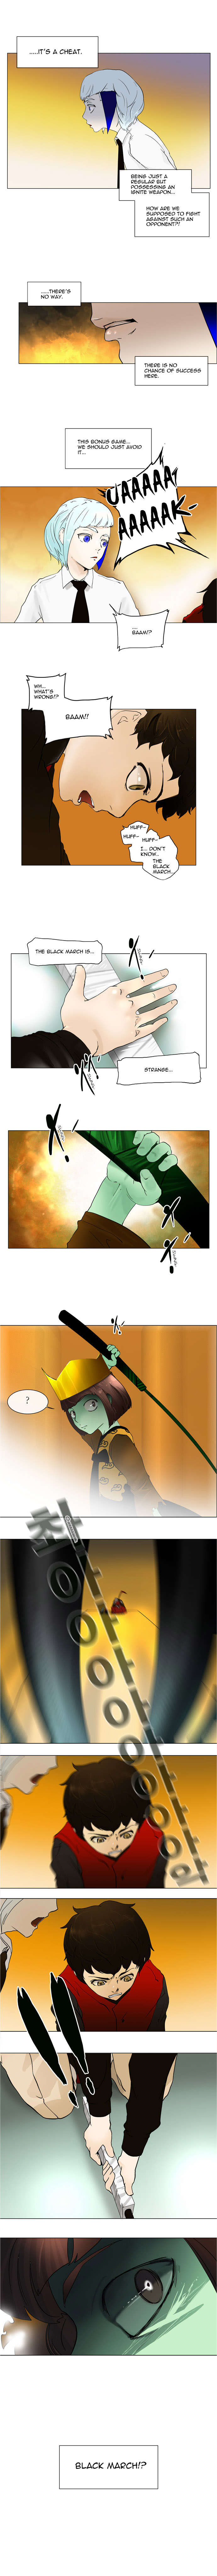 Tower of God 18 Page 3